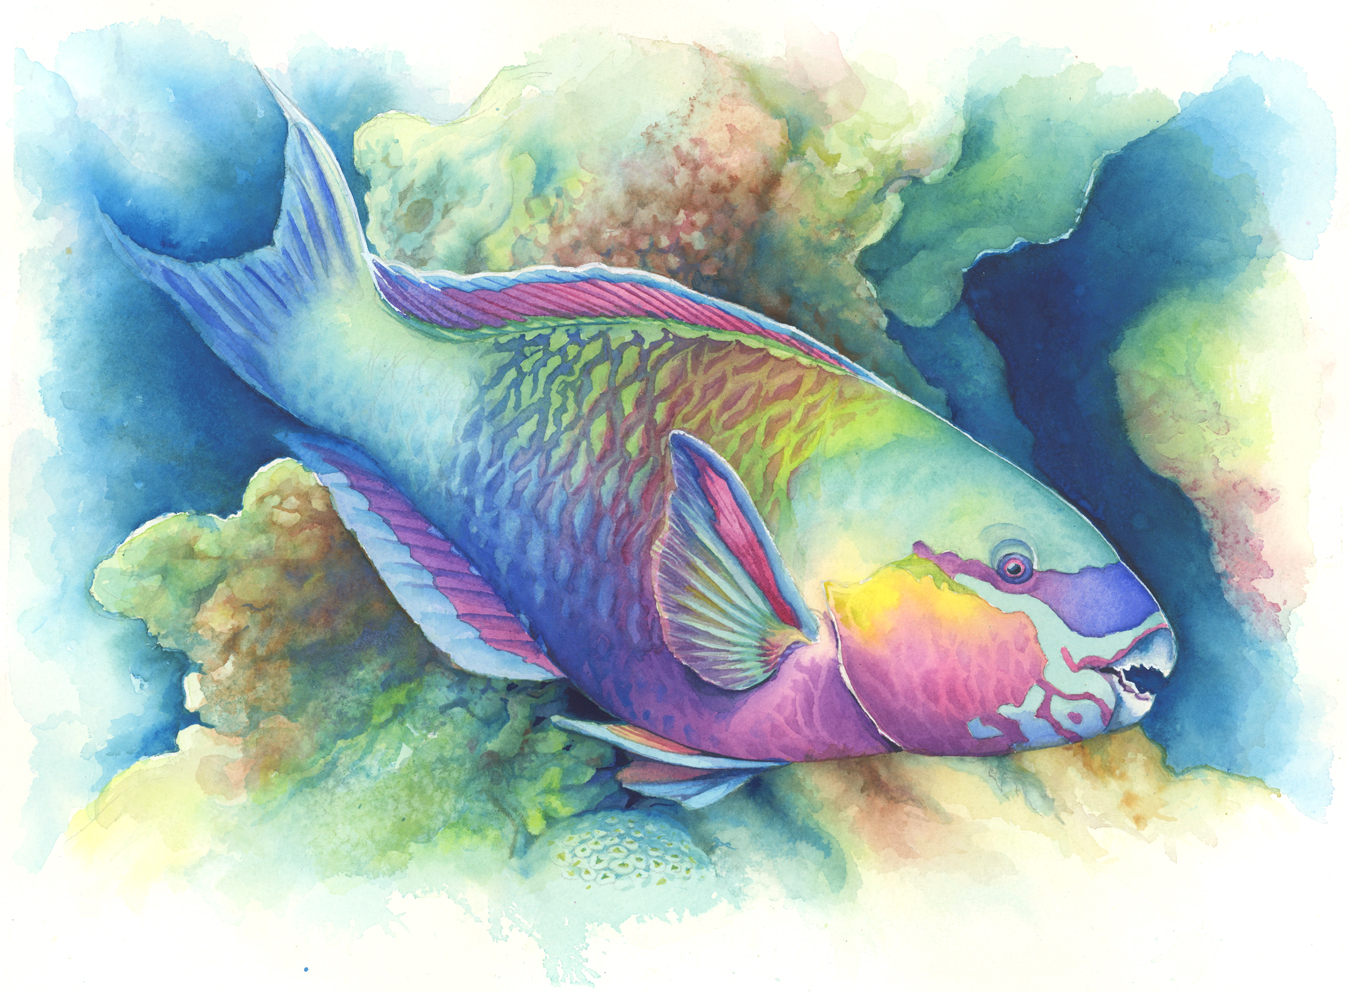 Maury aaseng the art of painting sea life in watercolor for Sea life paintings artists